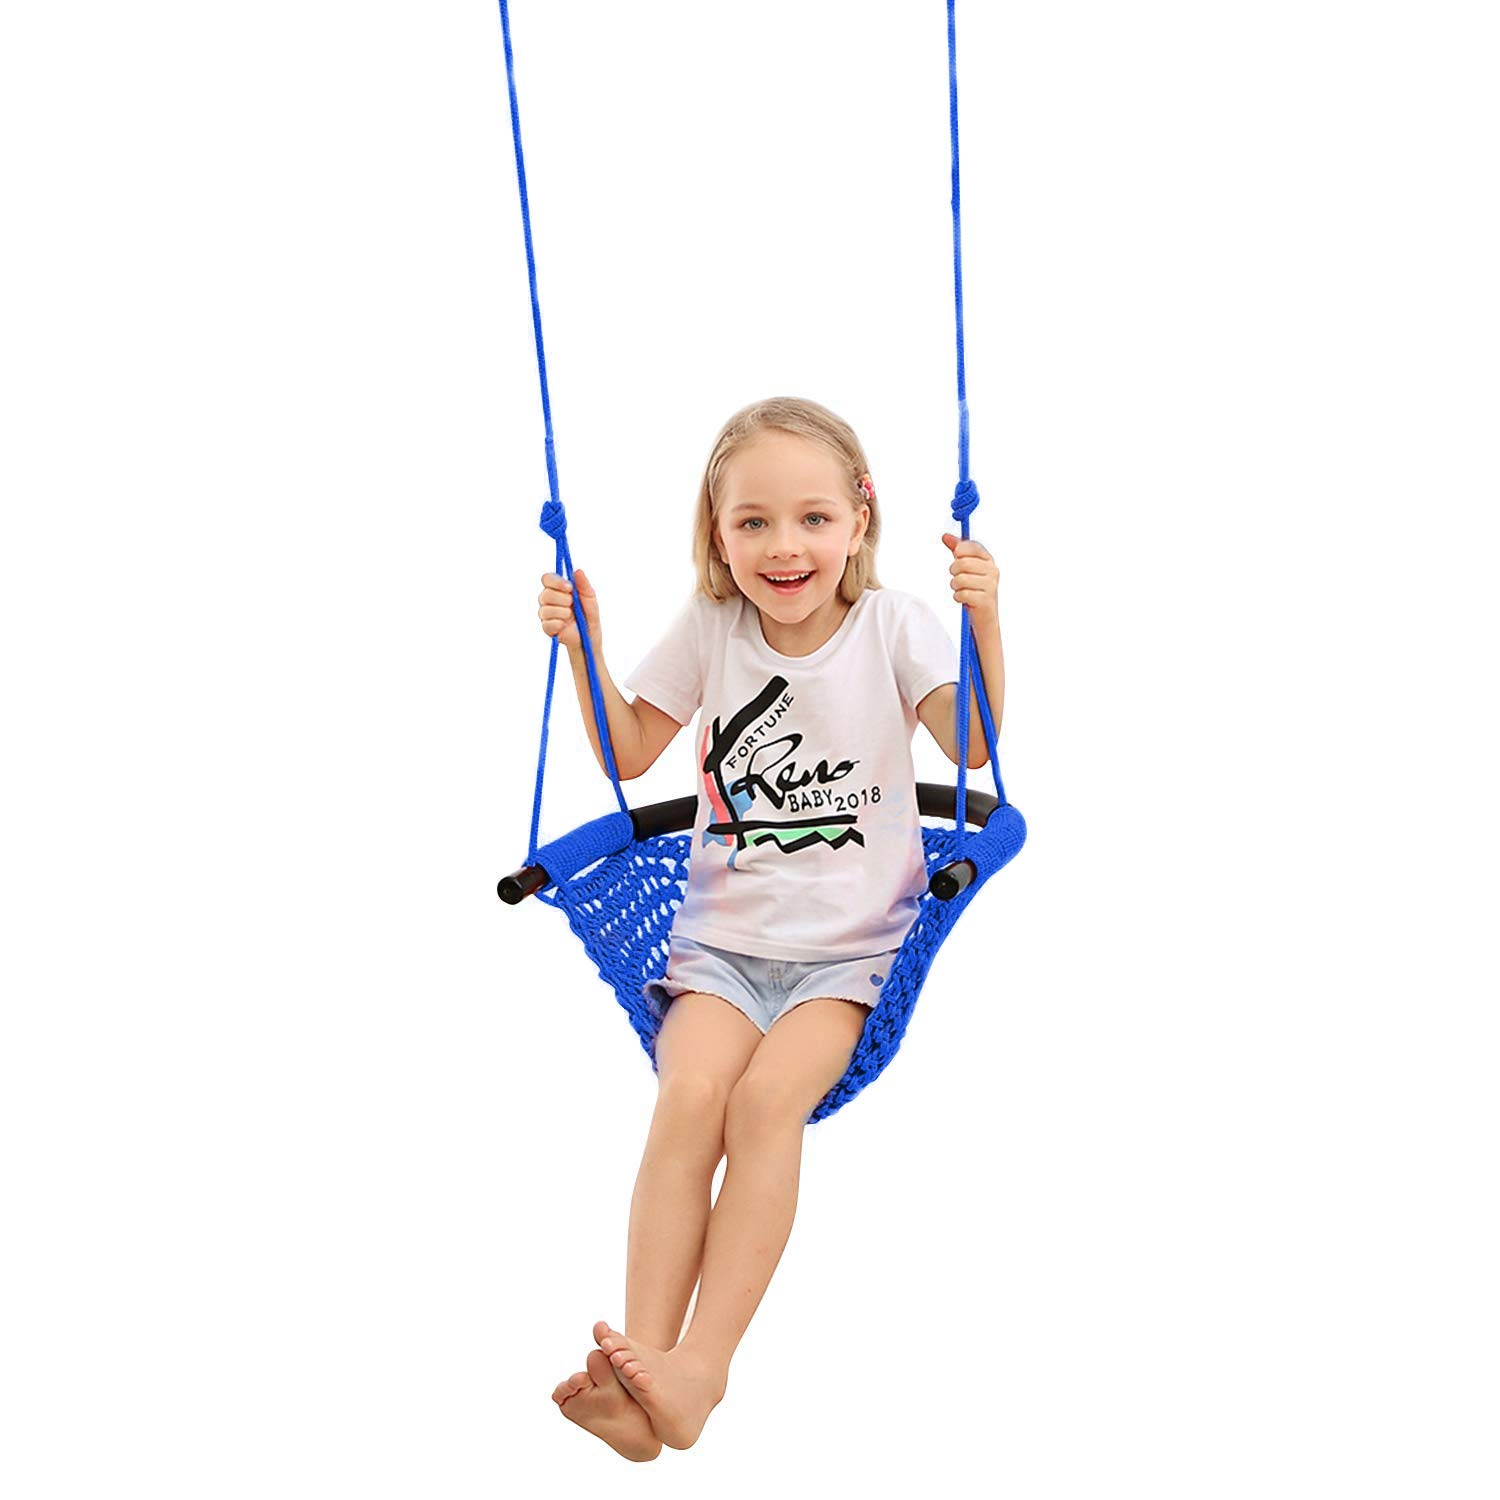 JKsmart Swing Seat for Kids Heavy Duty Rope Play Secure Children Swing Set,Perfect for Indoor,Outdoor,Playground,Home,Tree,with Snap Hooks and Swing Straps,440 lbs Capacity,Blue(Patent Pending) by JKsmart